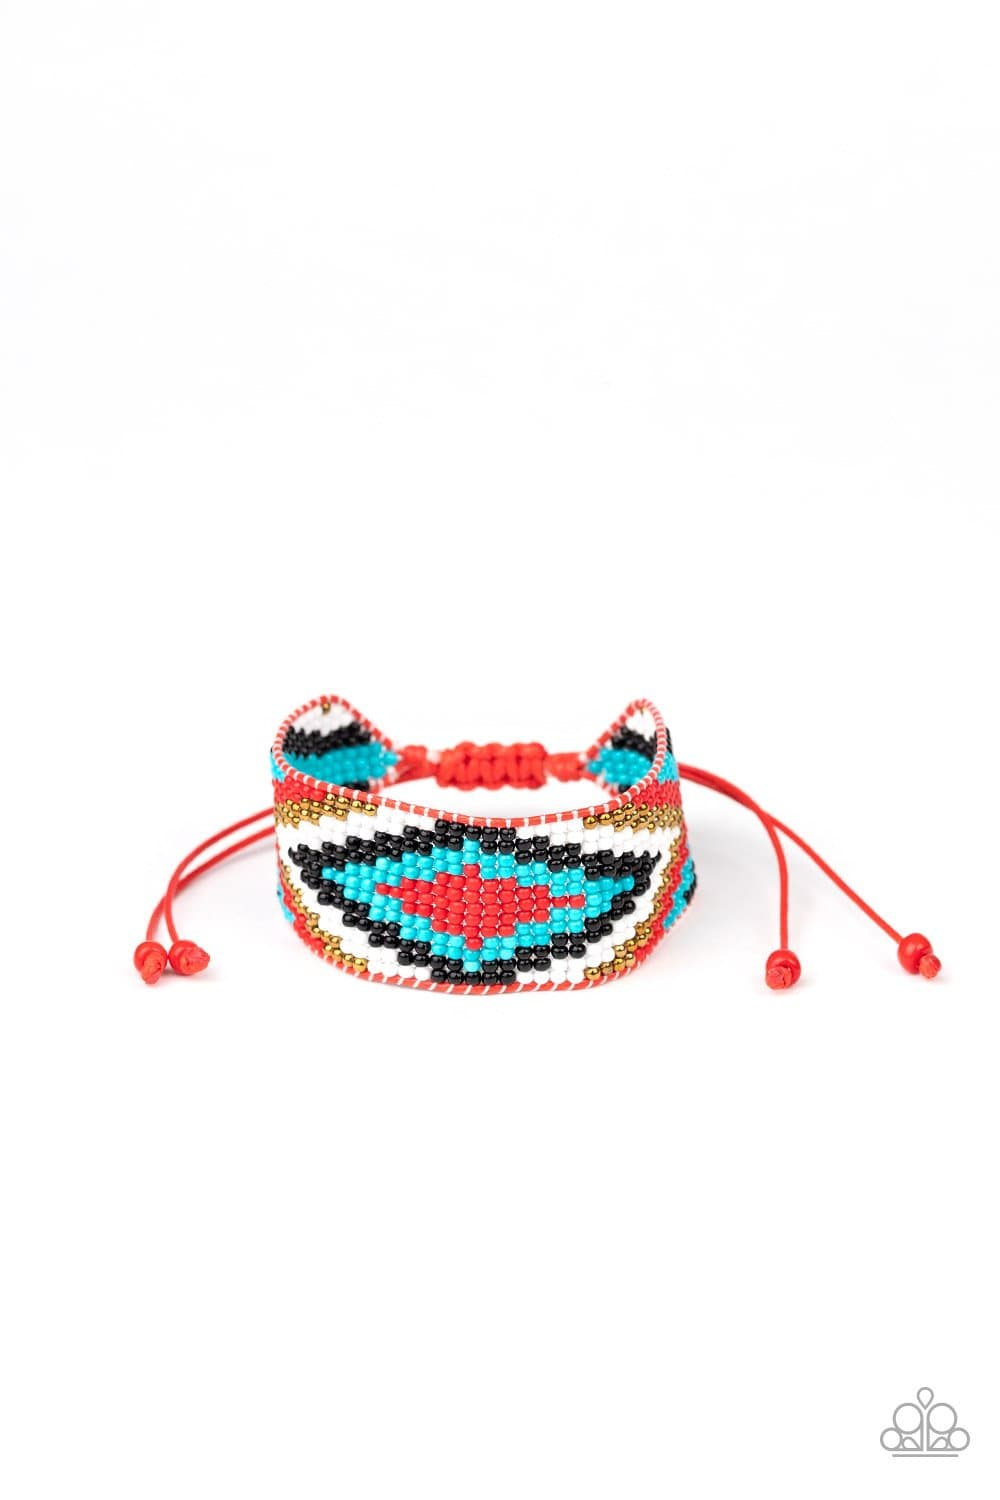 Paparazzi: Beautifully Badlands - Red Seed Bead Bracelet